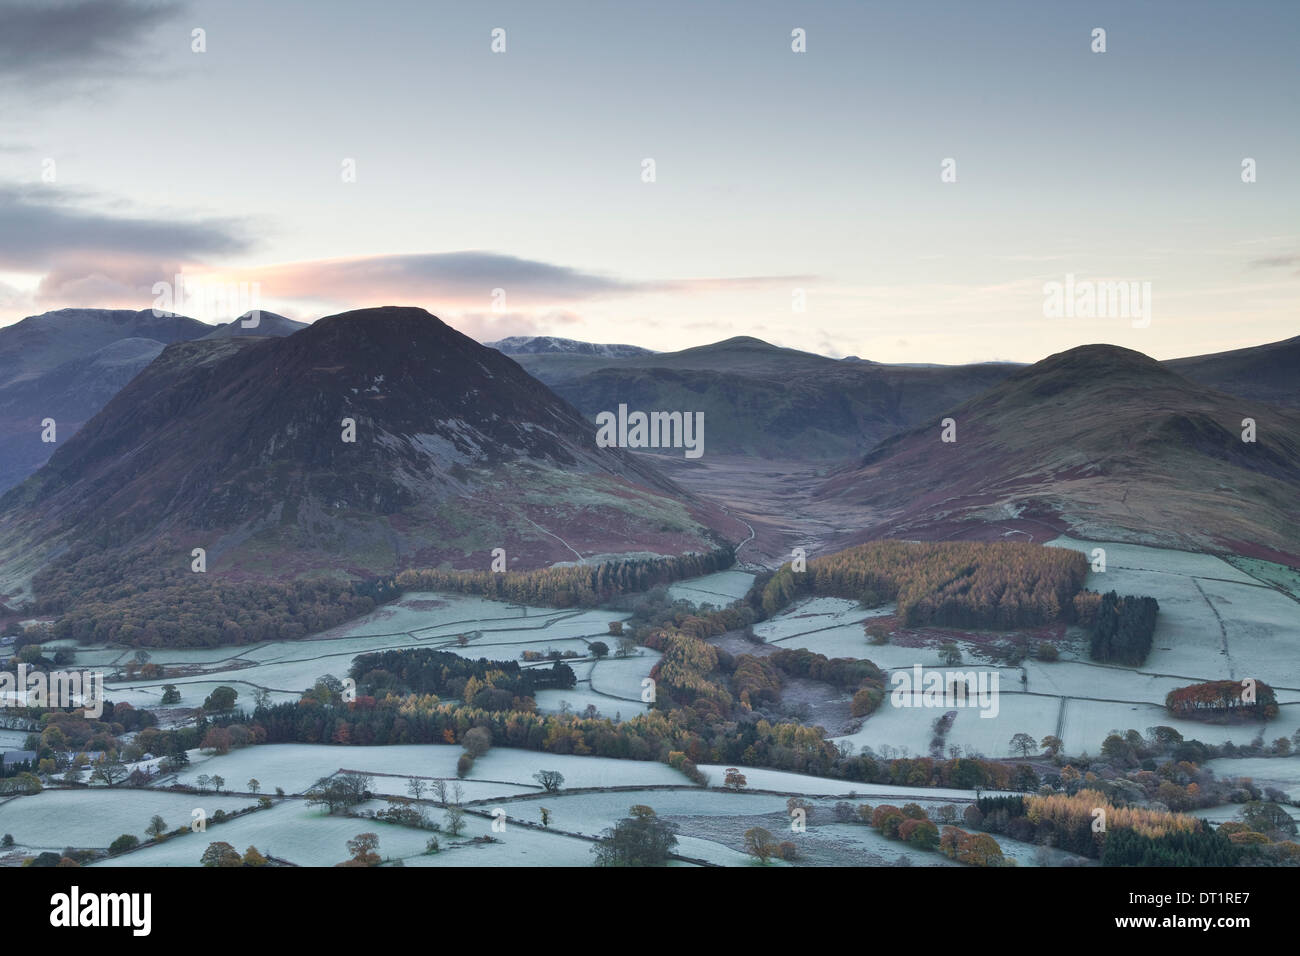 A frosty morning over Loweswater Fell in the Lake District National Park, Cumbria, England, United Kingdom, Europe - Stock Image